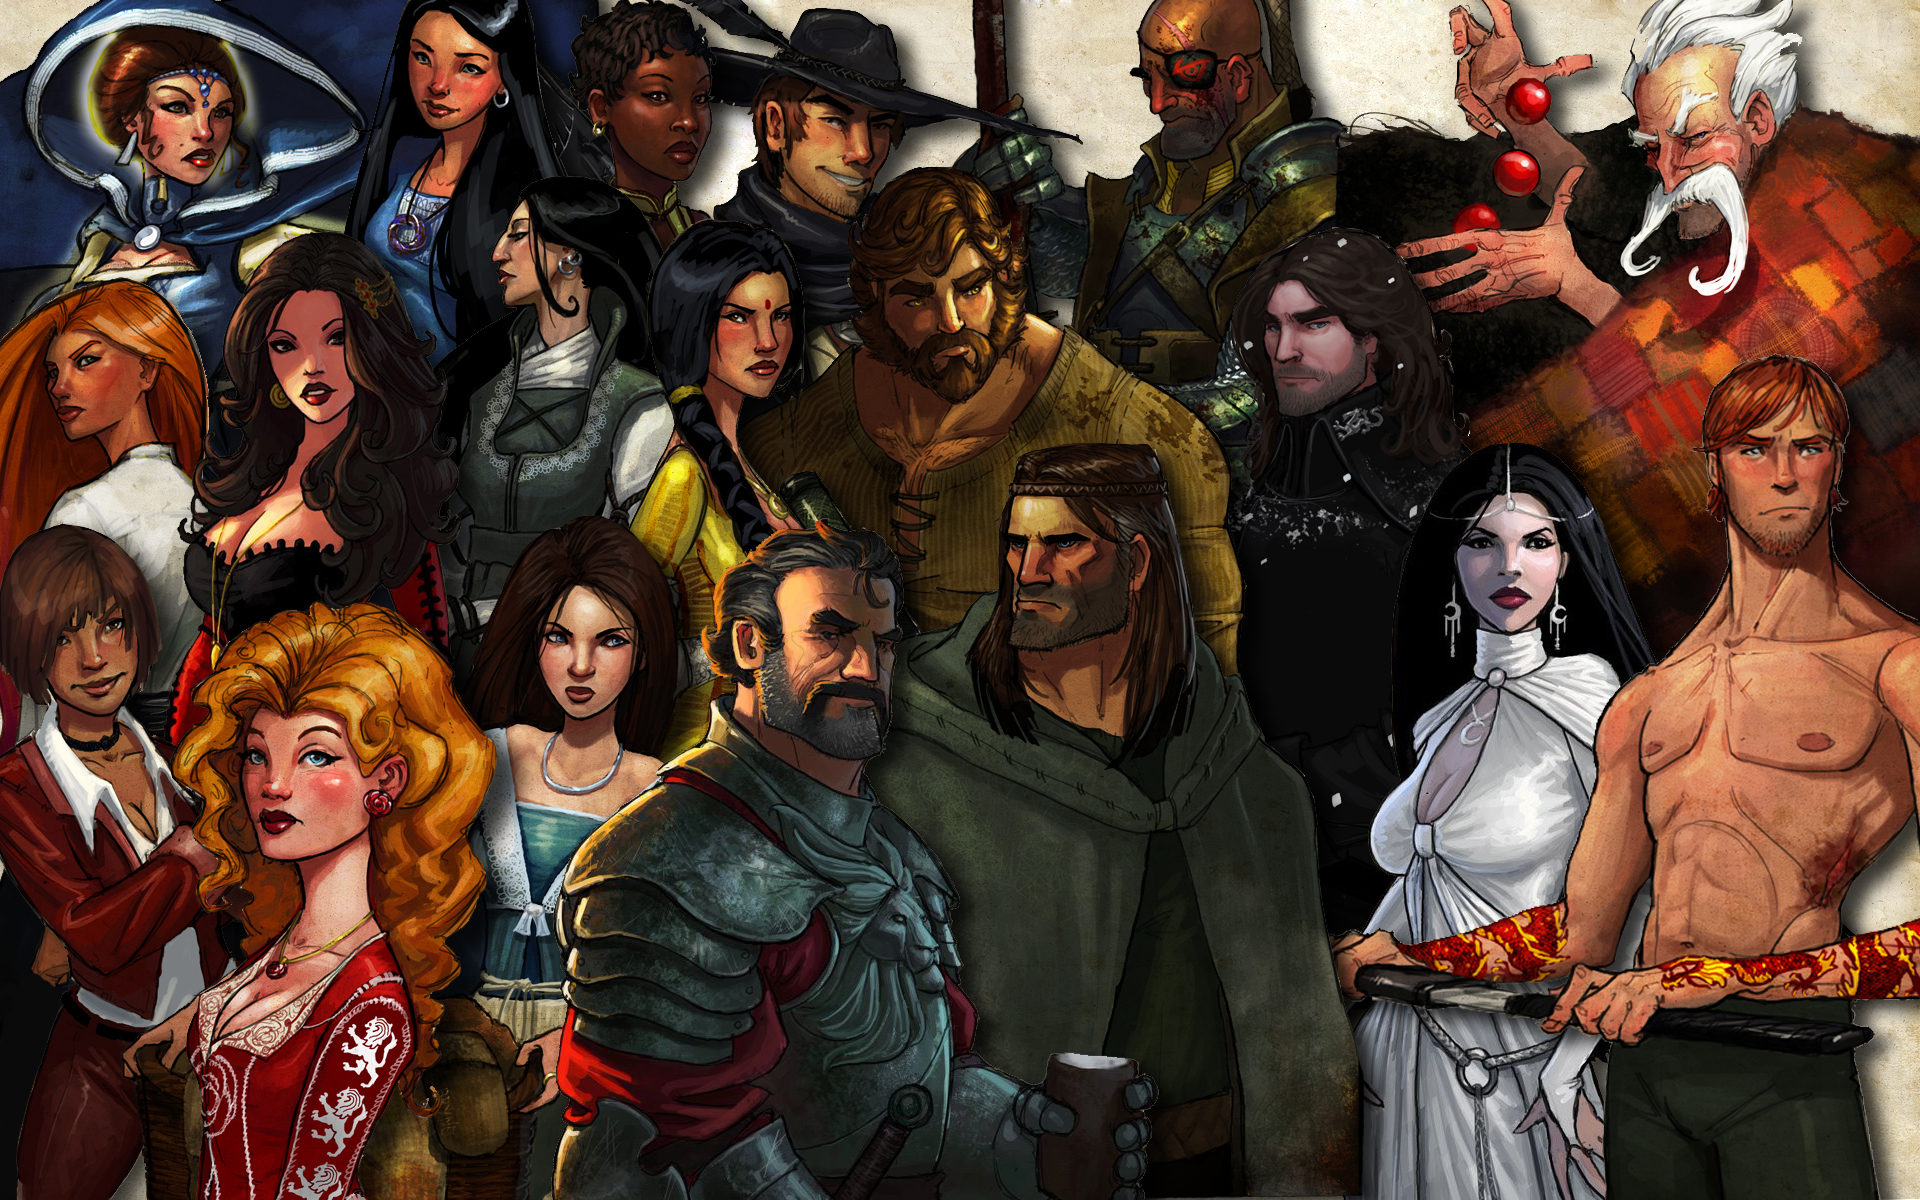 1920x1200 > The Wheel Of Time Wallpapers